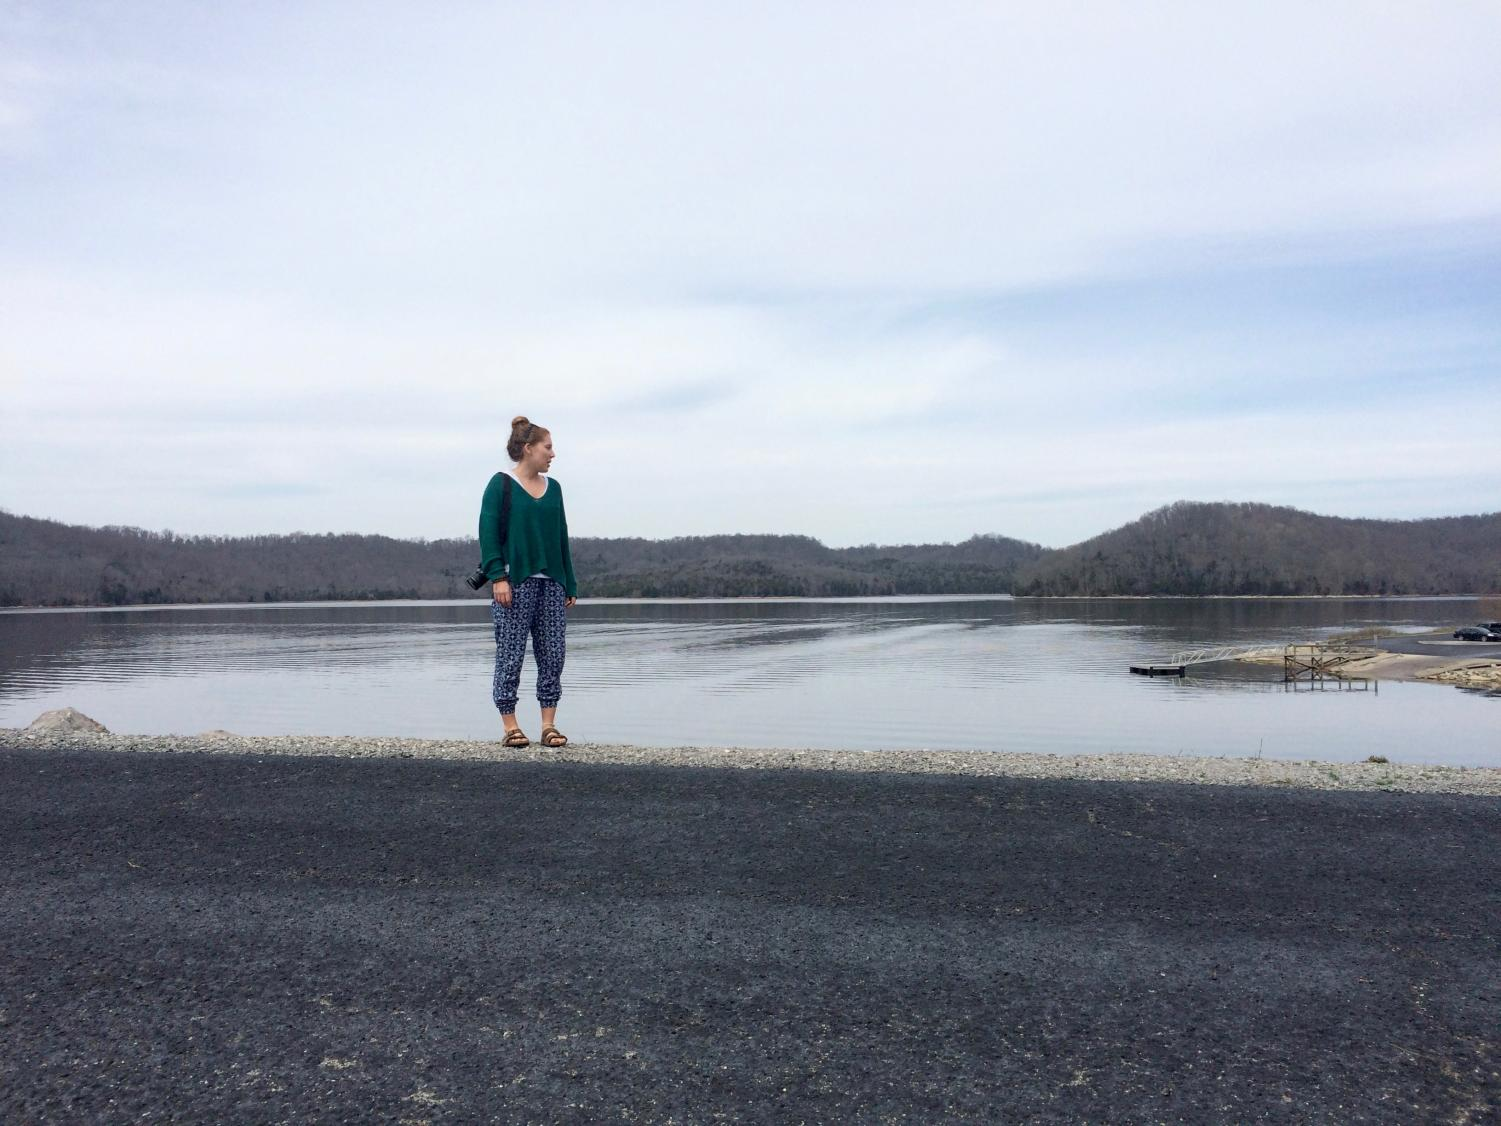 Carlee Belt, a senior television major and environmental studies minor, will spend January in Hawaii as an Artist in Residence and conduct environmental field work.